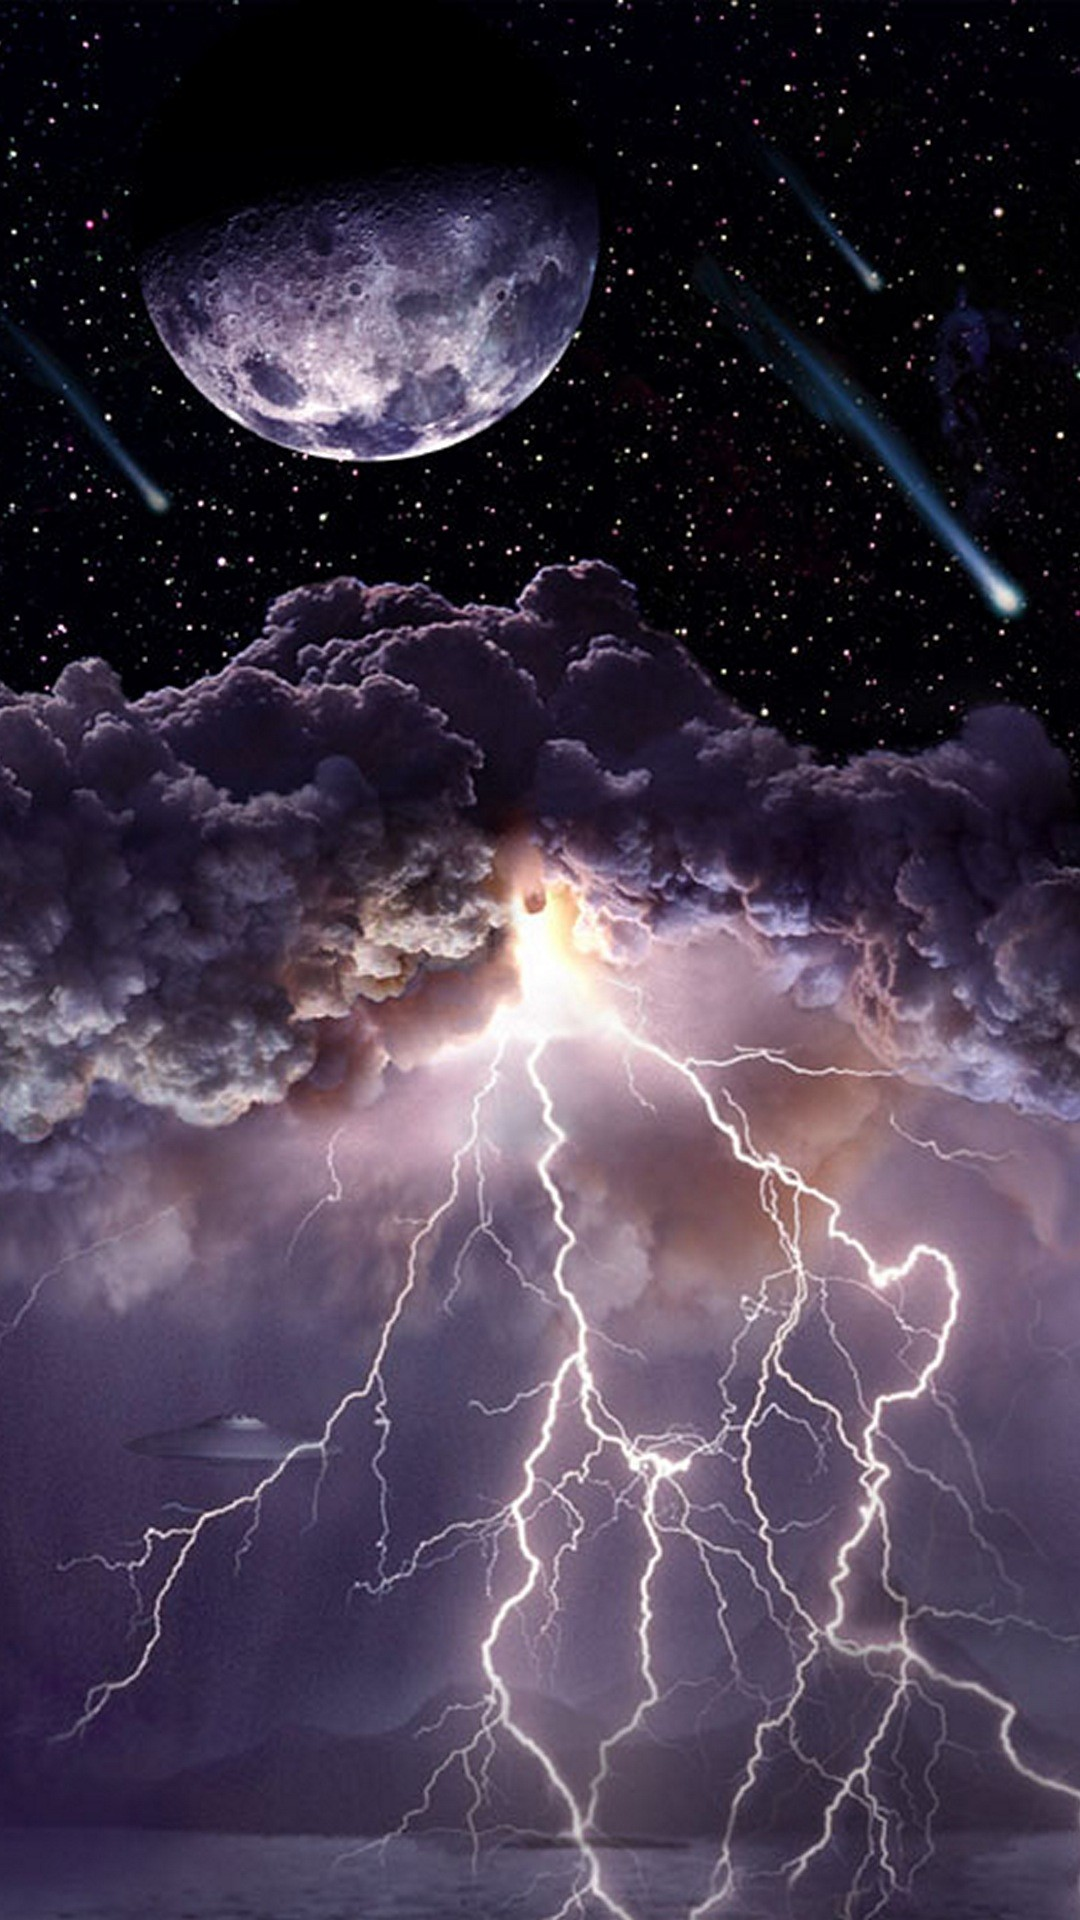 Res: 1080x1920, Moon Asteroids Storm Clouds Lightning Android Wallpaper ...